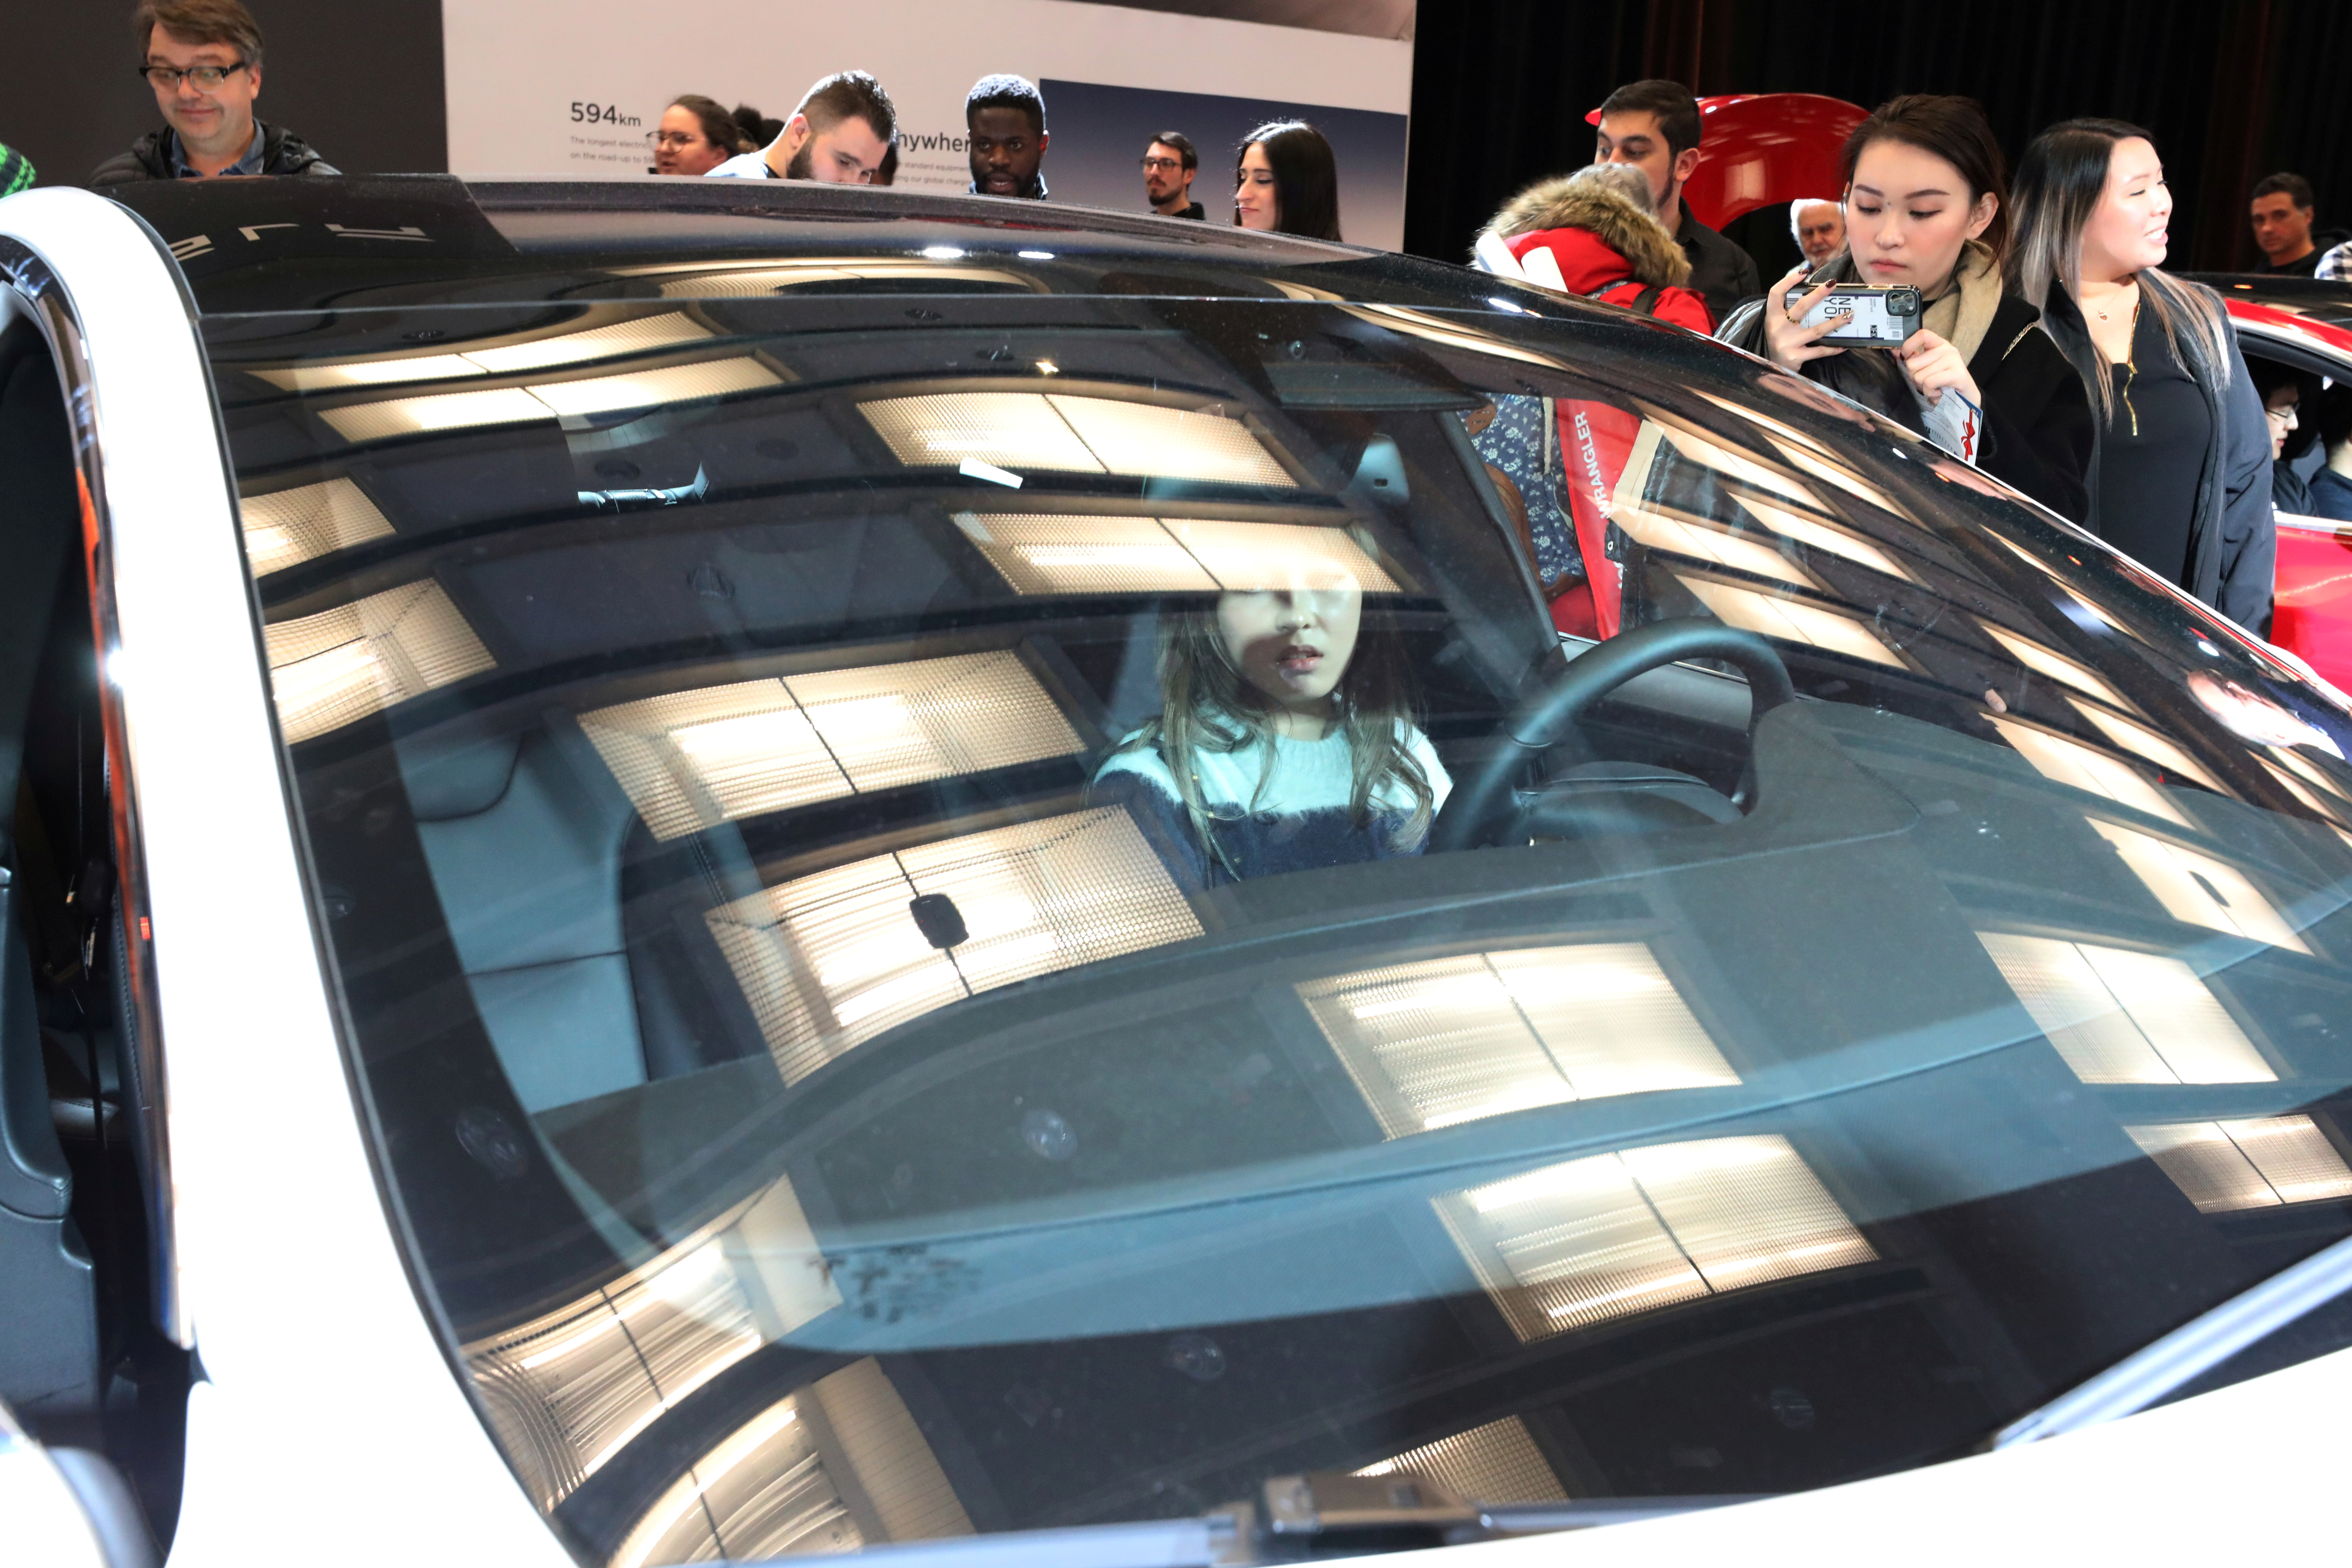 A visitor sits in the Tesla Model S electric vehicle at the Canadian International Auto Show in Toronto, Ontario, Canada February 18, 2020. REUTERS/Chris Helgren/File Photo